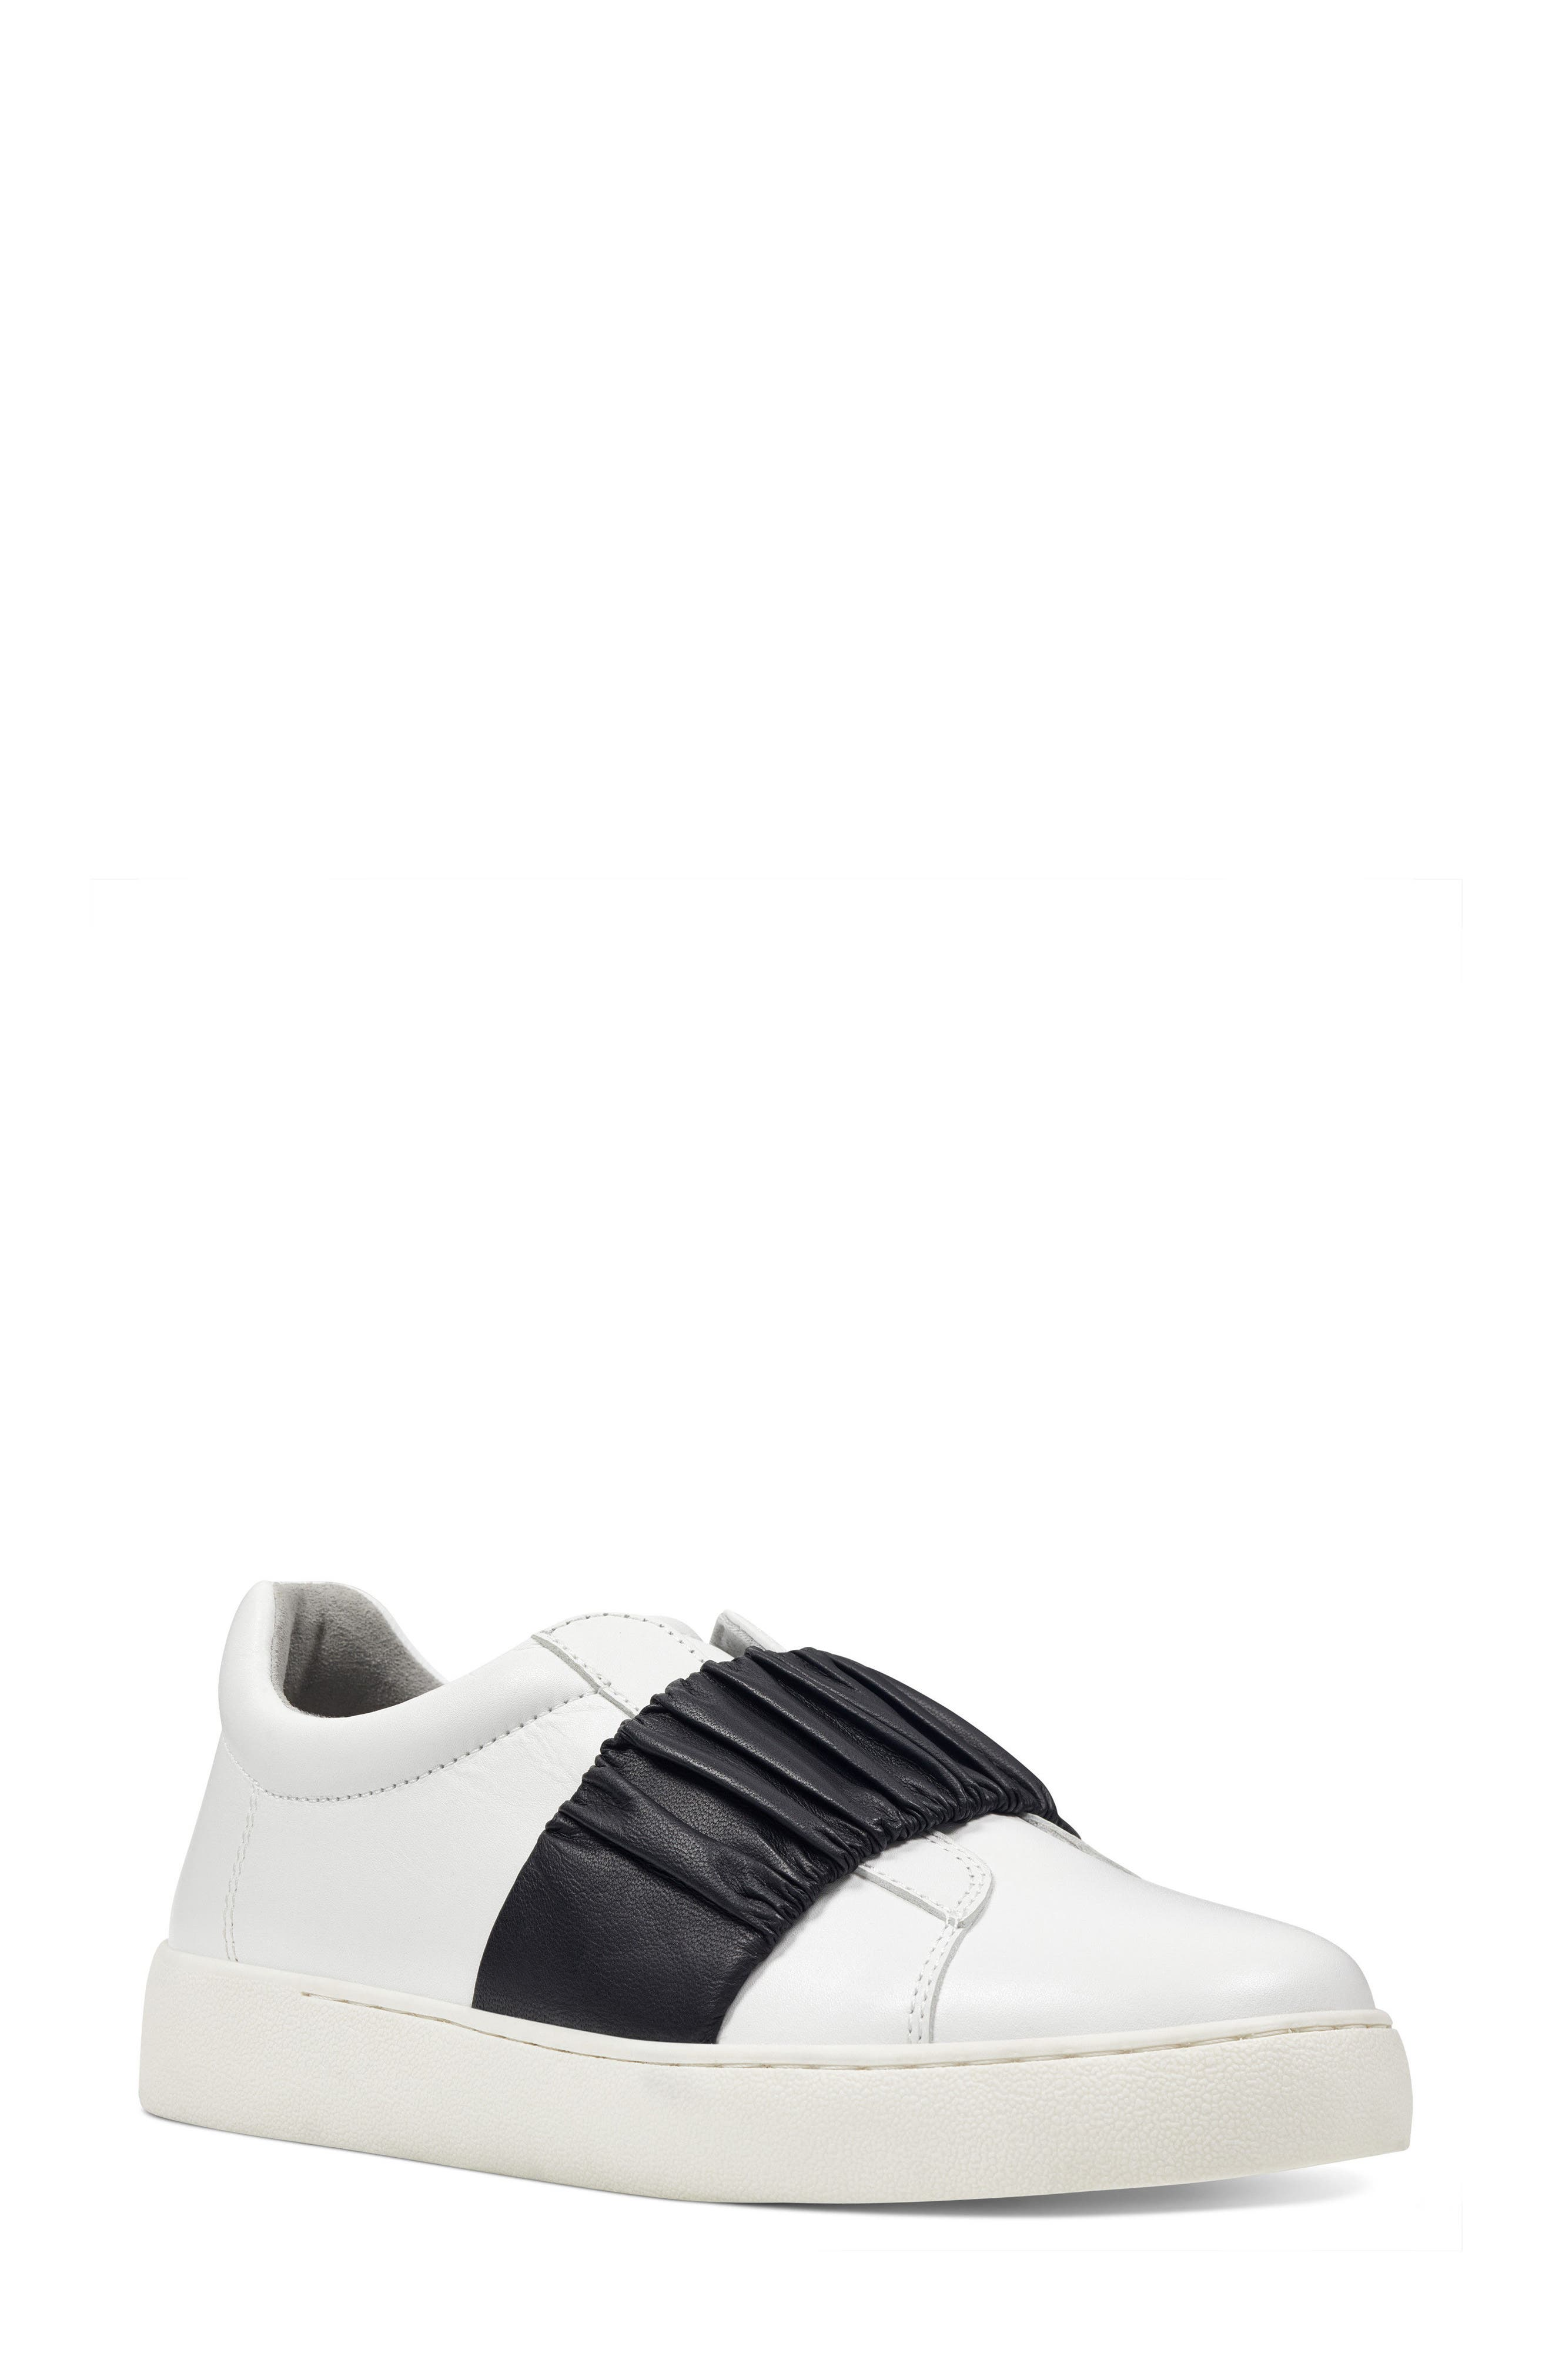 Pindiviah Slip-On Sneaker,                         Main,                         color, White/ Black Leather